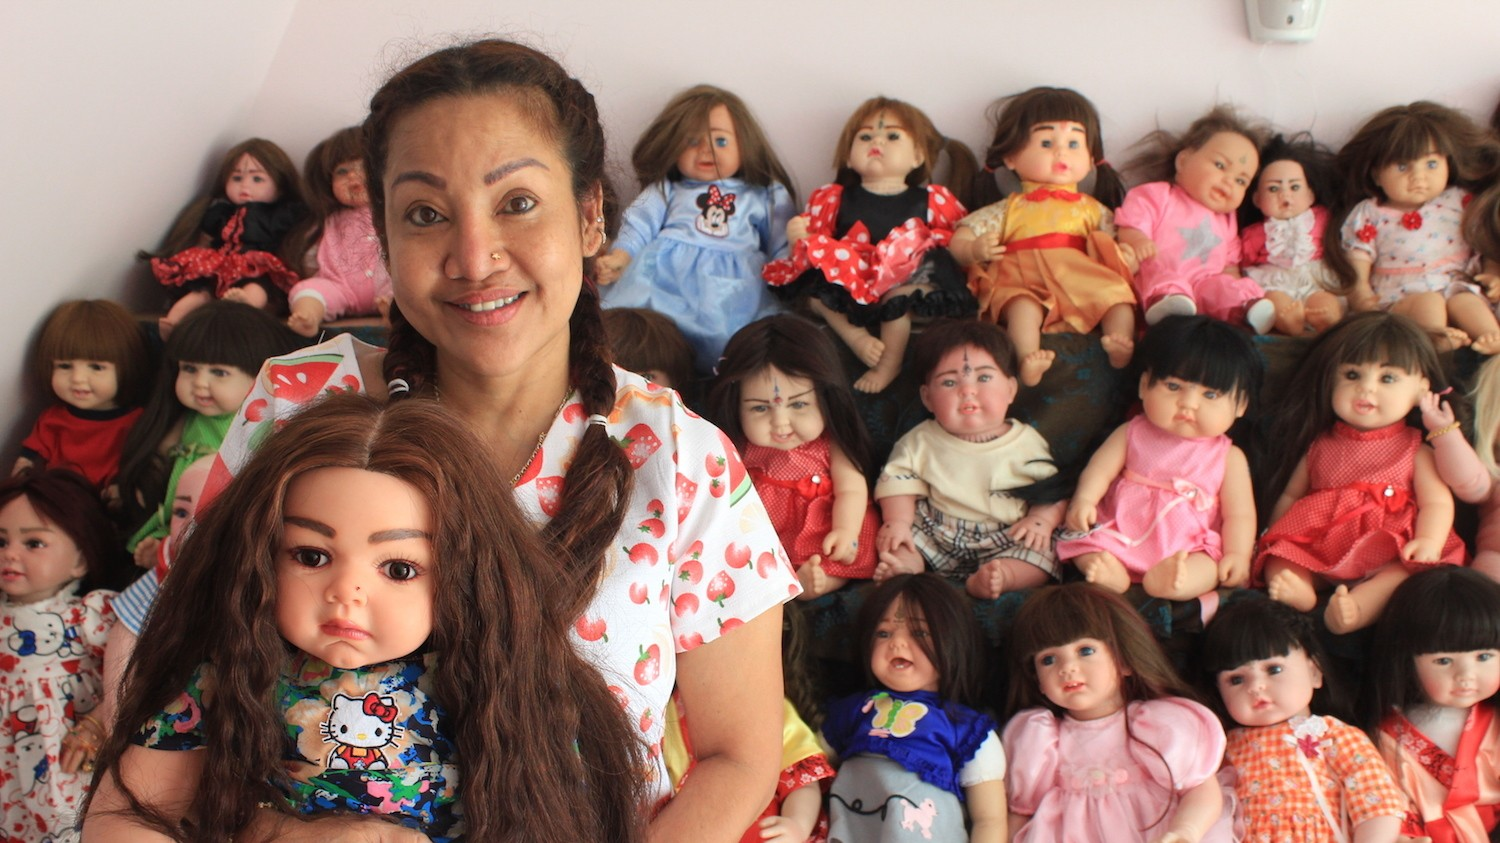 Welcome to the Dollhouse: Inside Thailand's Craze for Dolls with Human Souls